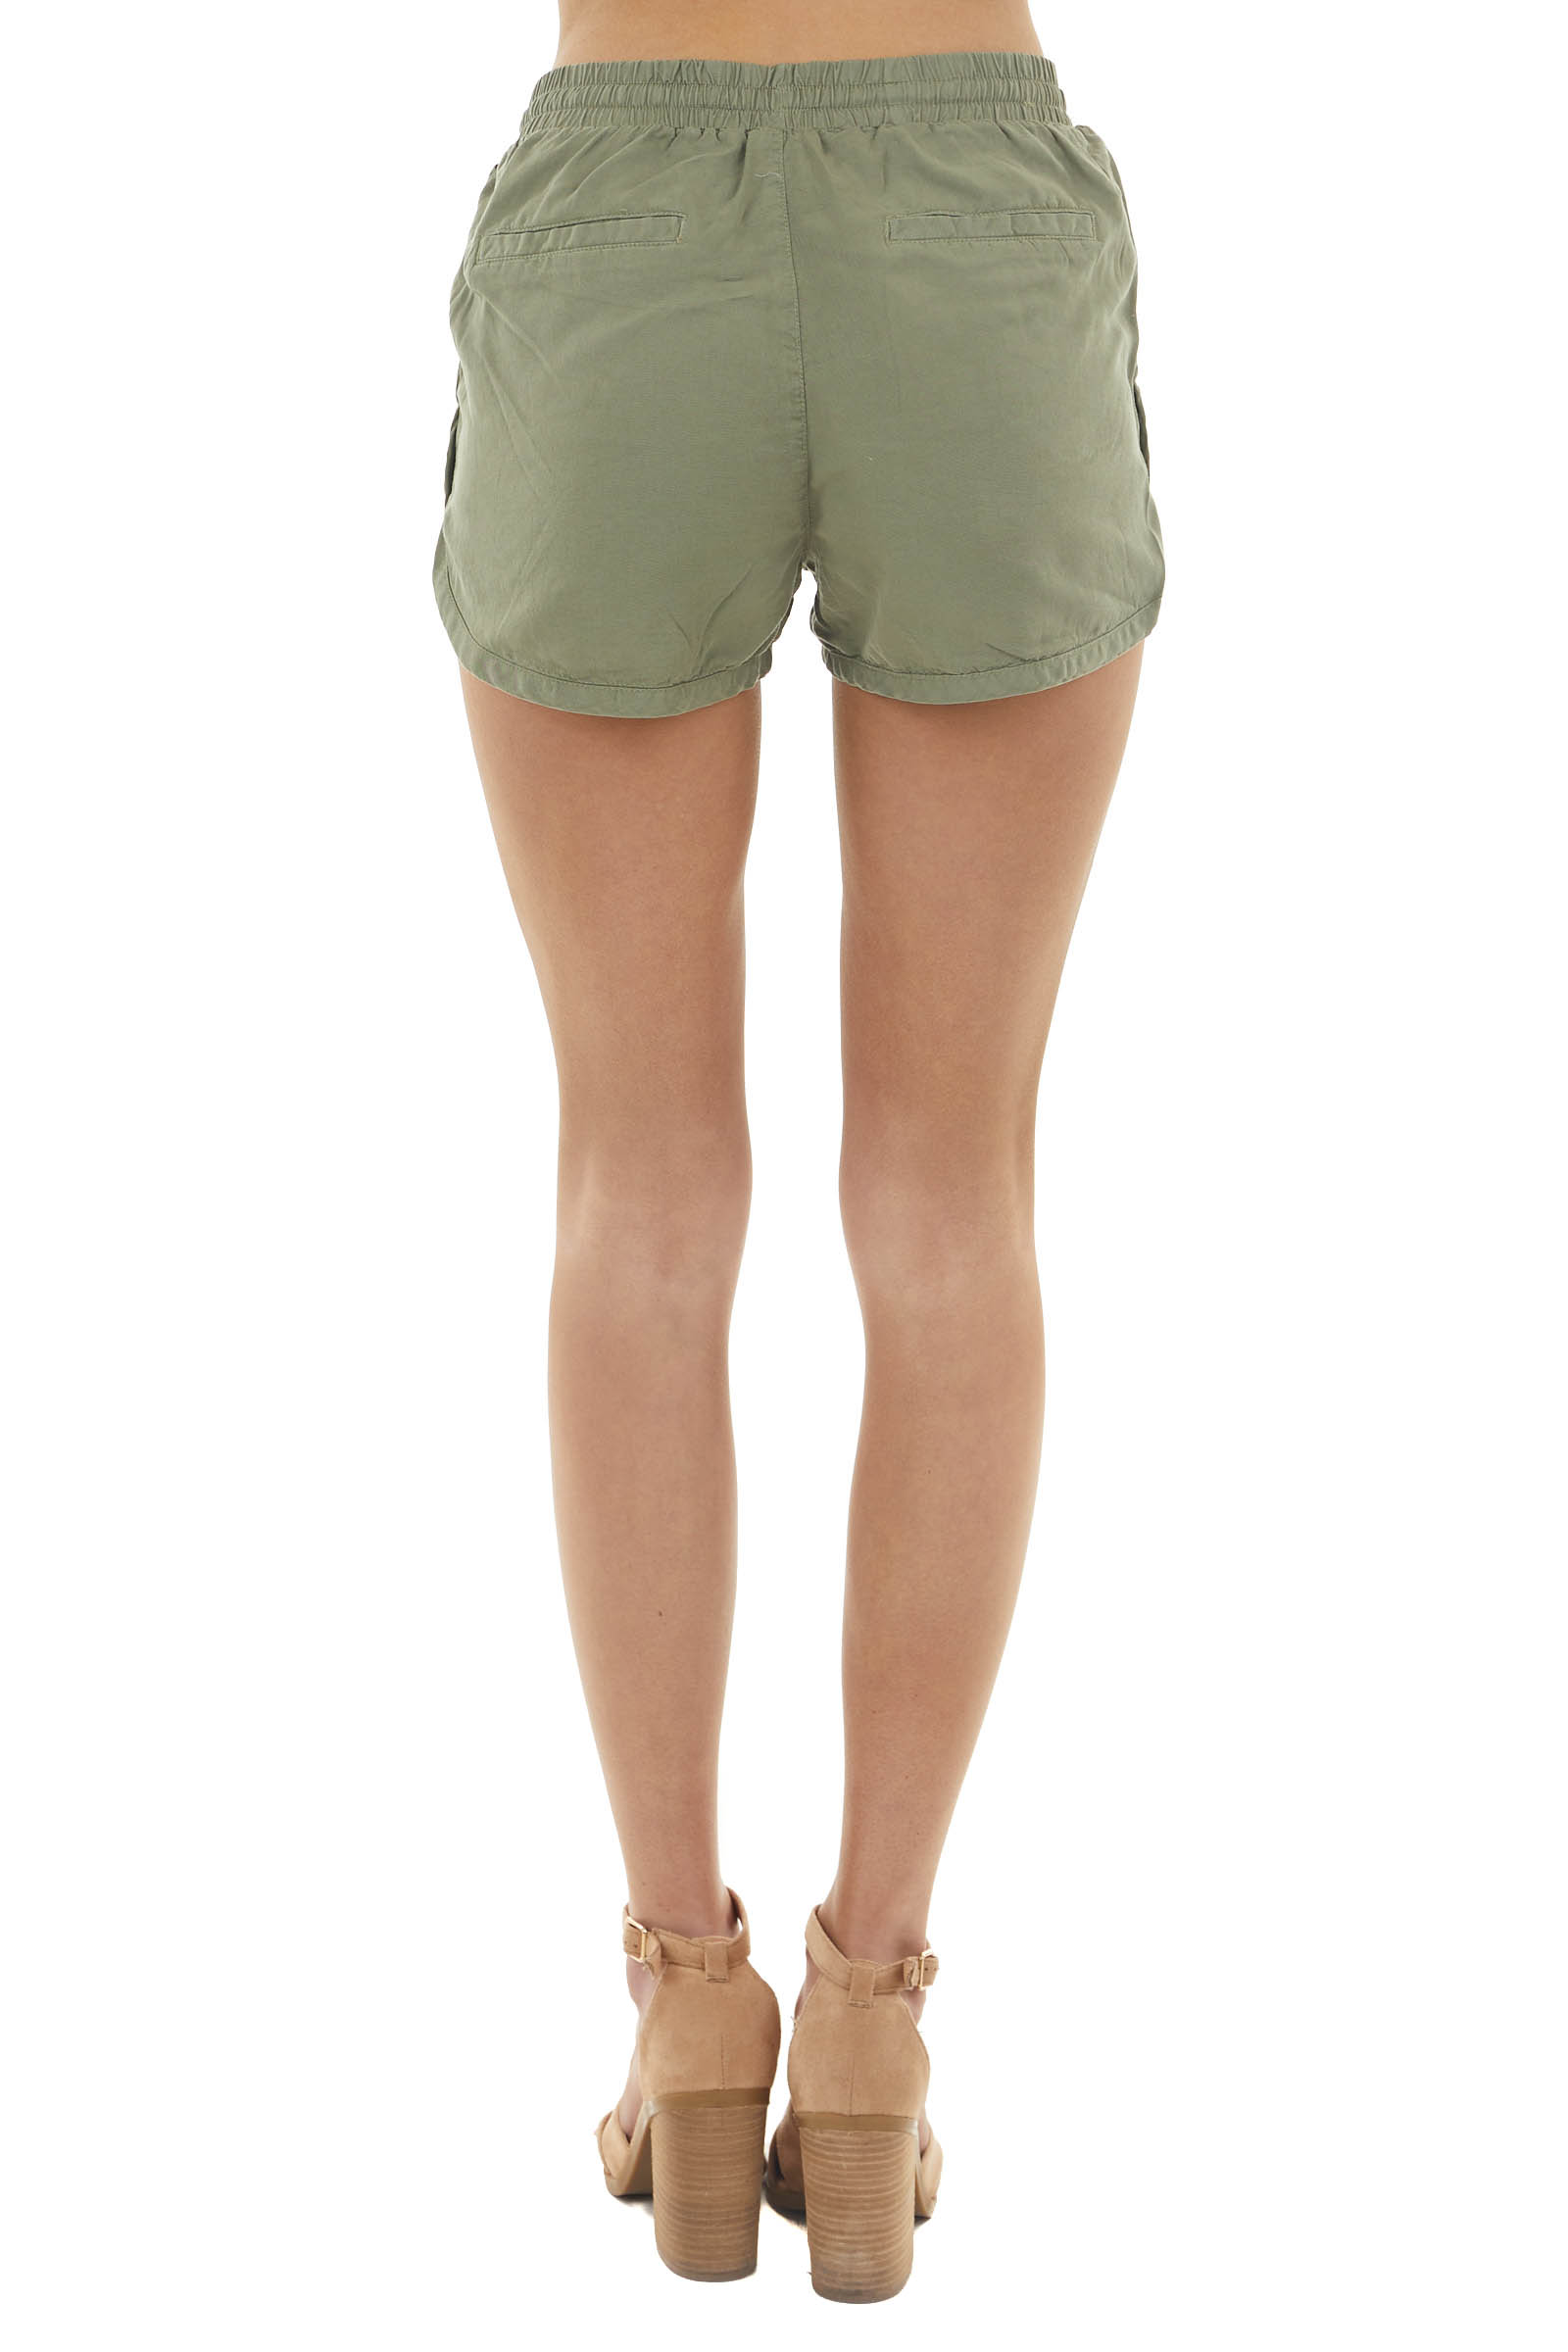 Rich Olive High Rise Drawstring Shorts with Side Pockets